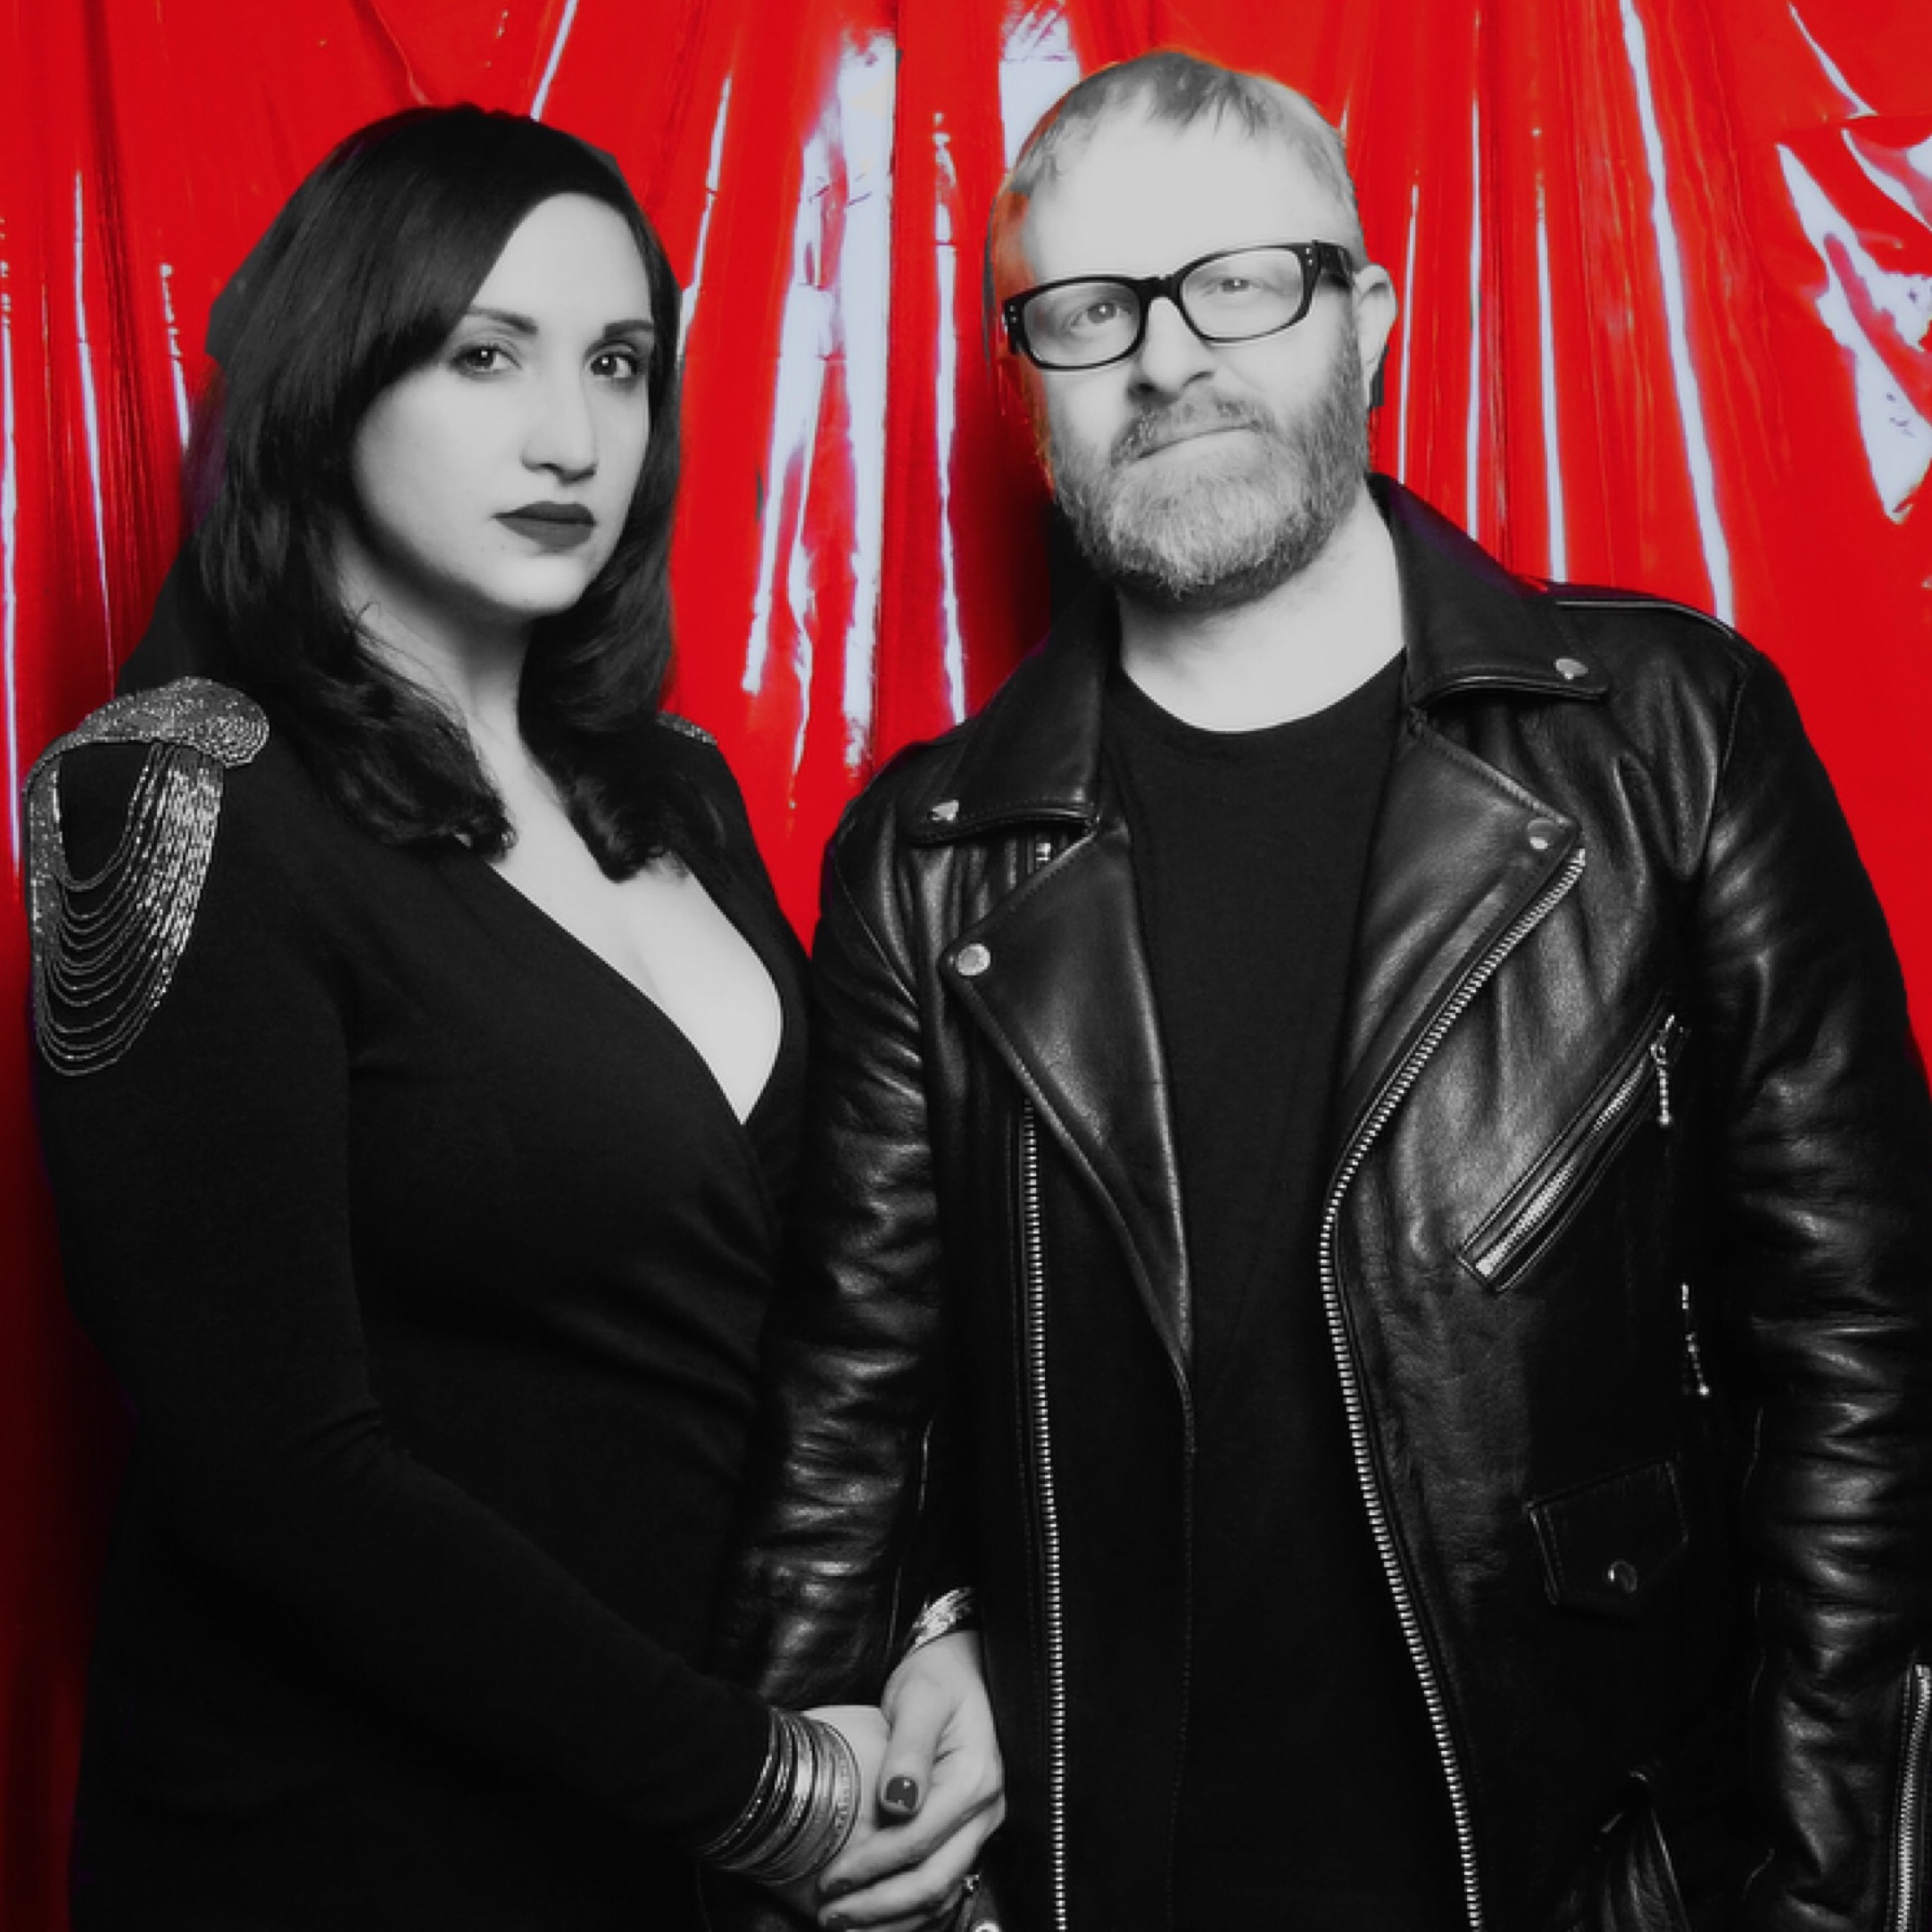 ABBY AHMAD & MARK MARSHALL BRING DIVERSE CATALOGS TO HOMETOWN SHOW AT KARL HALL